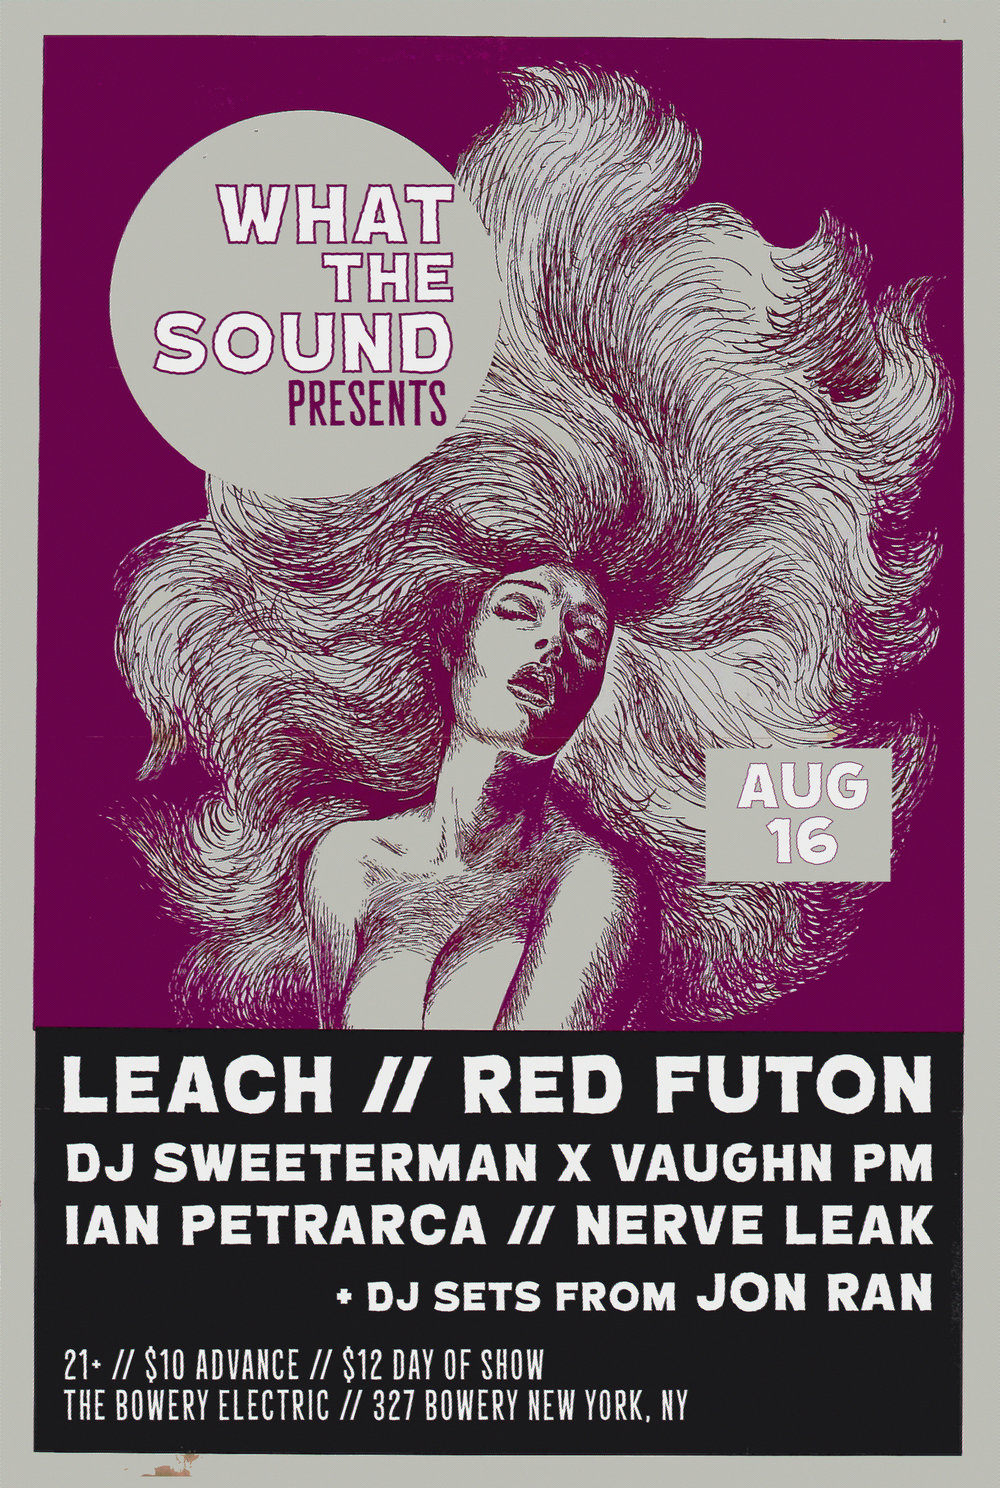 Leach / Red Futon / DJ Sweeterman x Vaughn PM / Ian Petrarca / Nerve Leak / JonRan - Artwork by Ben Redder  August 16th, 2016 at The Bowery Electric